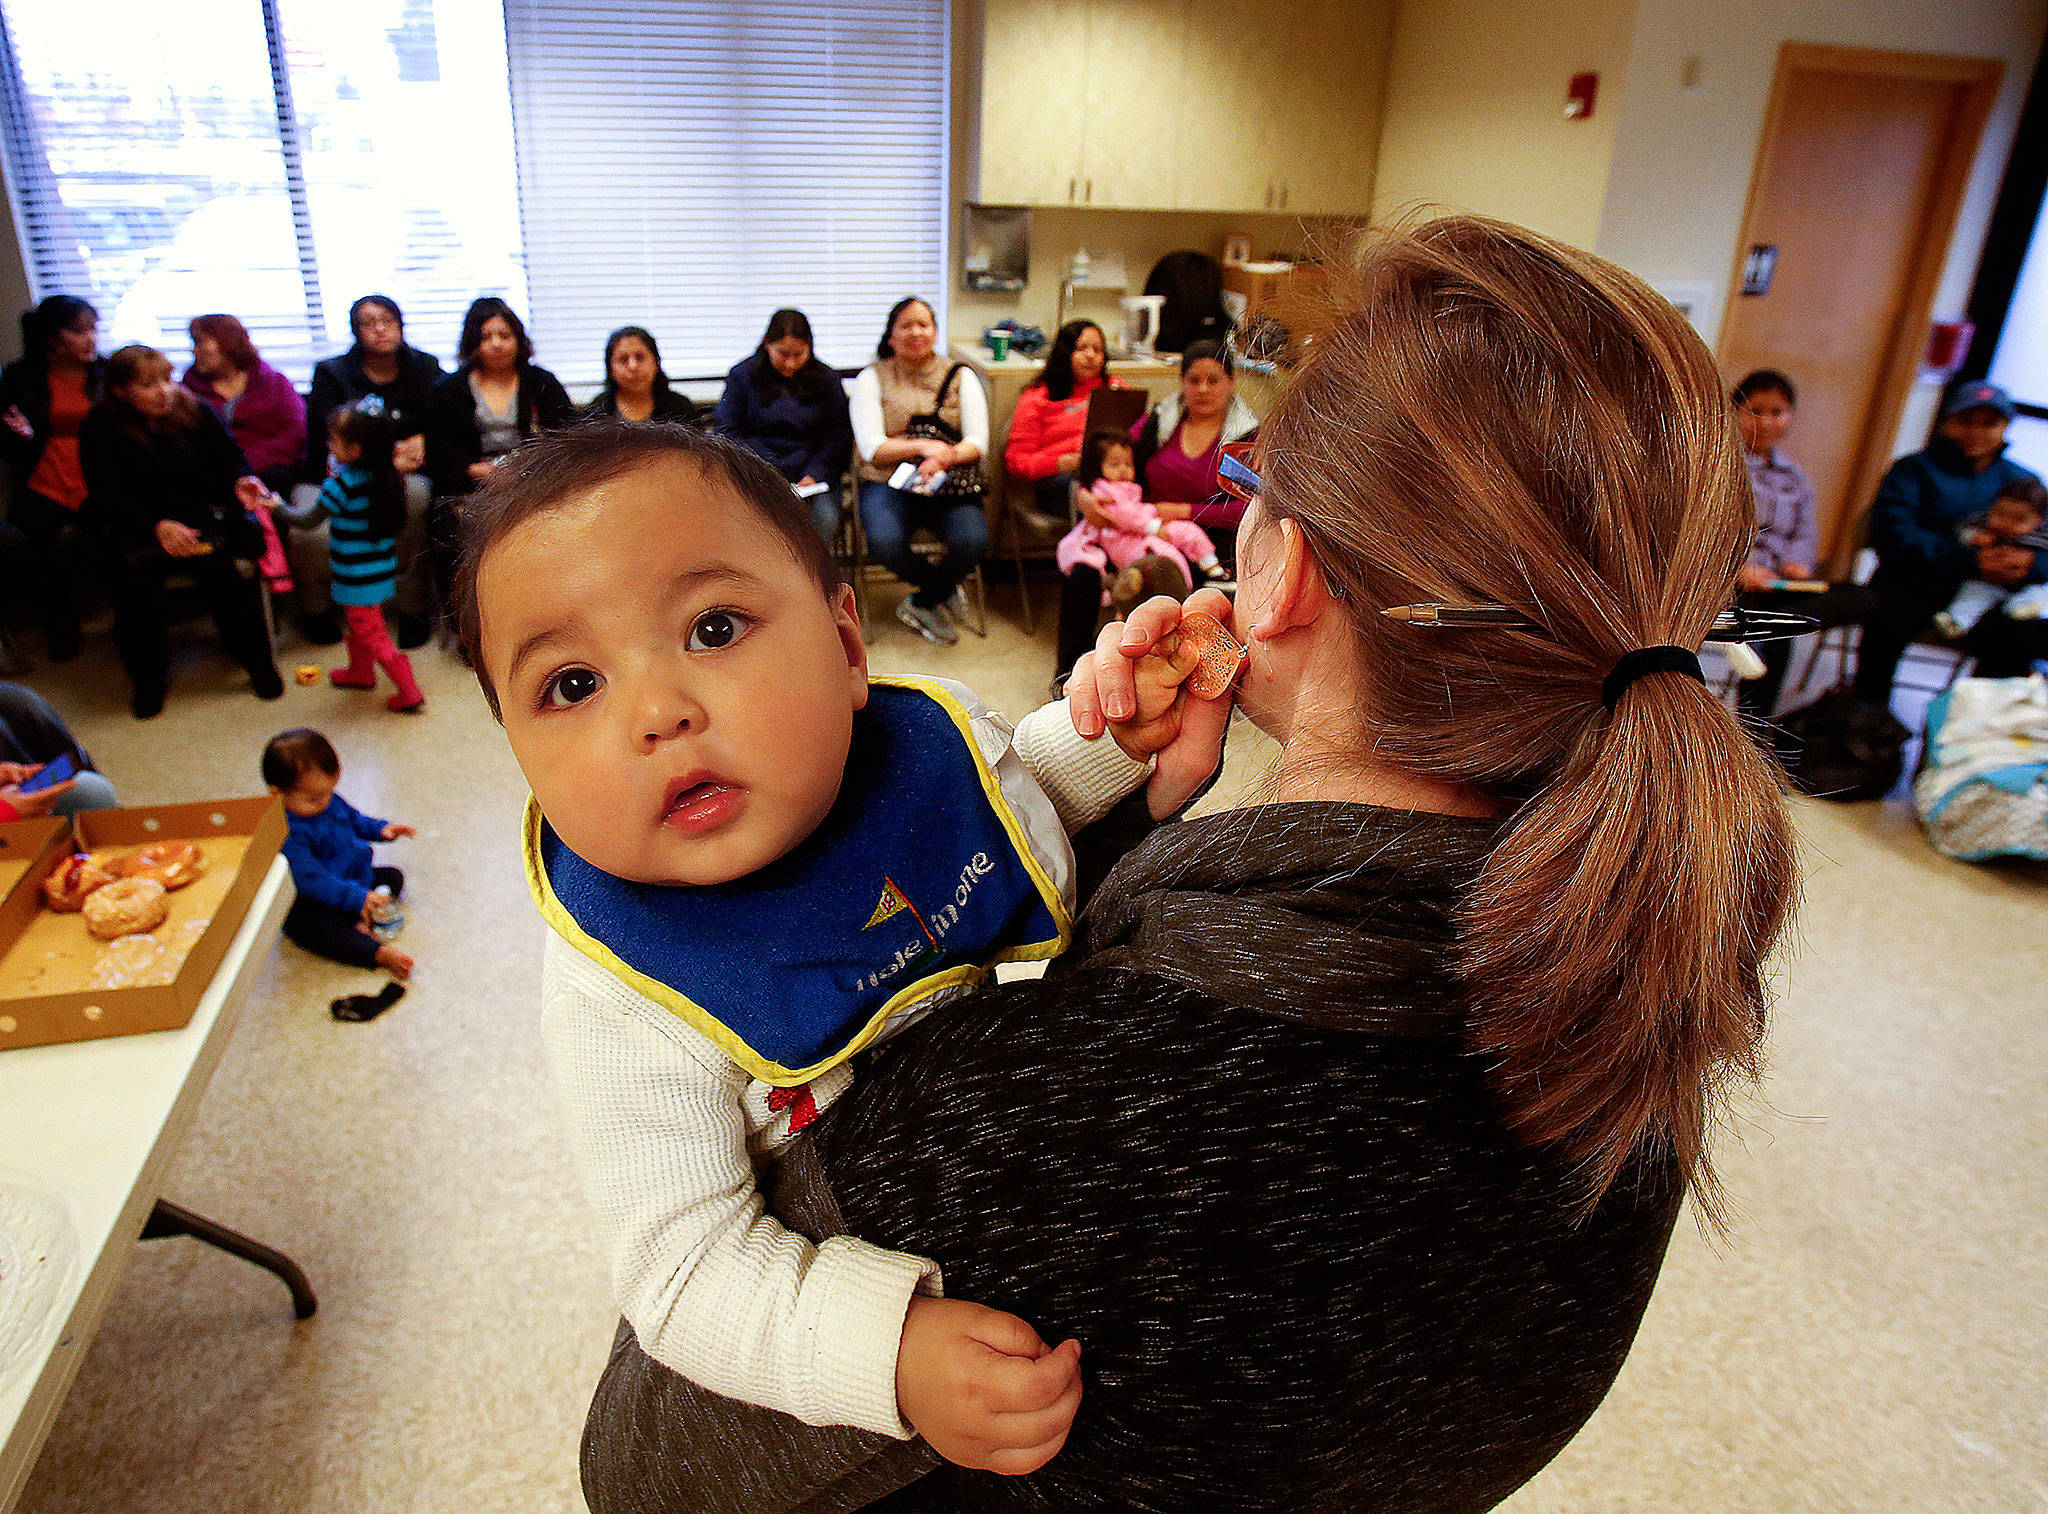 """While helping provide needed information for Casino Road-area moms at Hand in Hand, Angela Edwards walks around holding 7-month old Mario Gutierrez, who in turn holds her by the ear ring. """"He's my favorite little squishy baby,"""" says Edwards. (Dan Bates / The Herald)"""